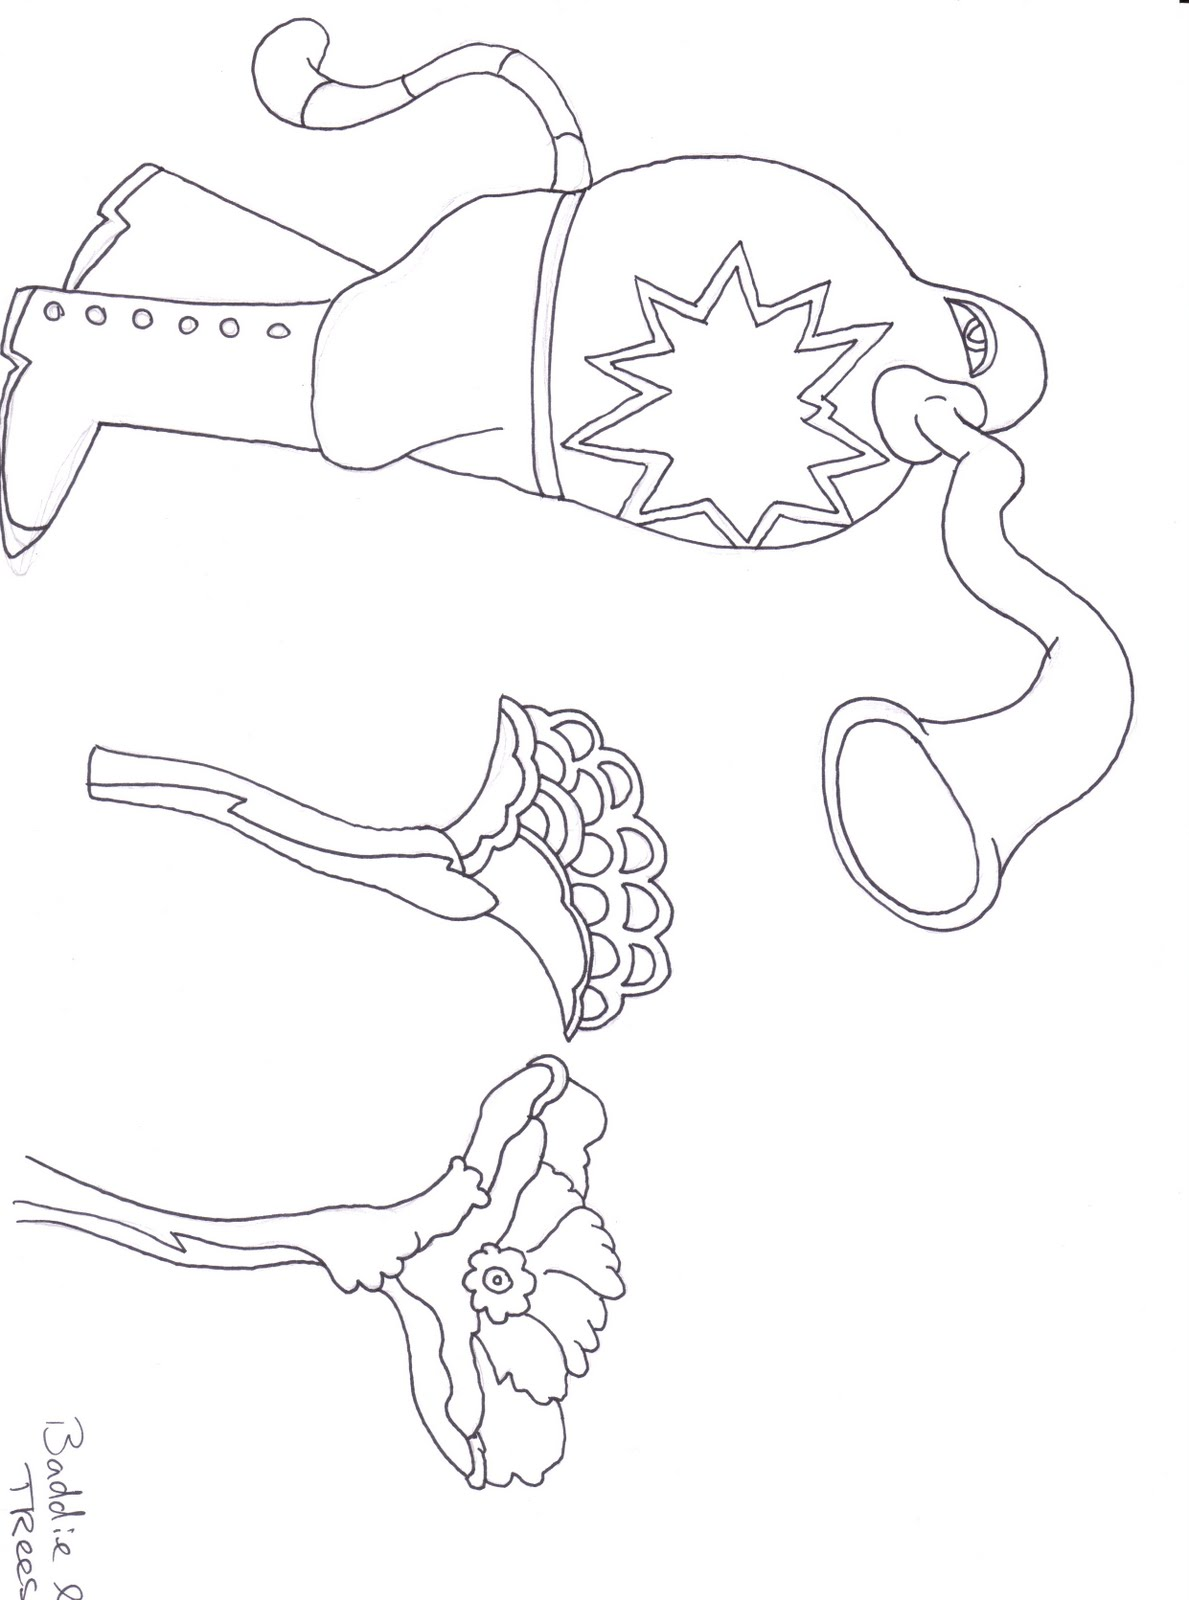 yellow submarine coloring pages - photo #14